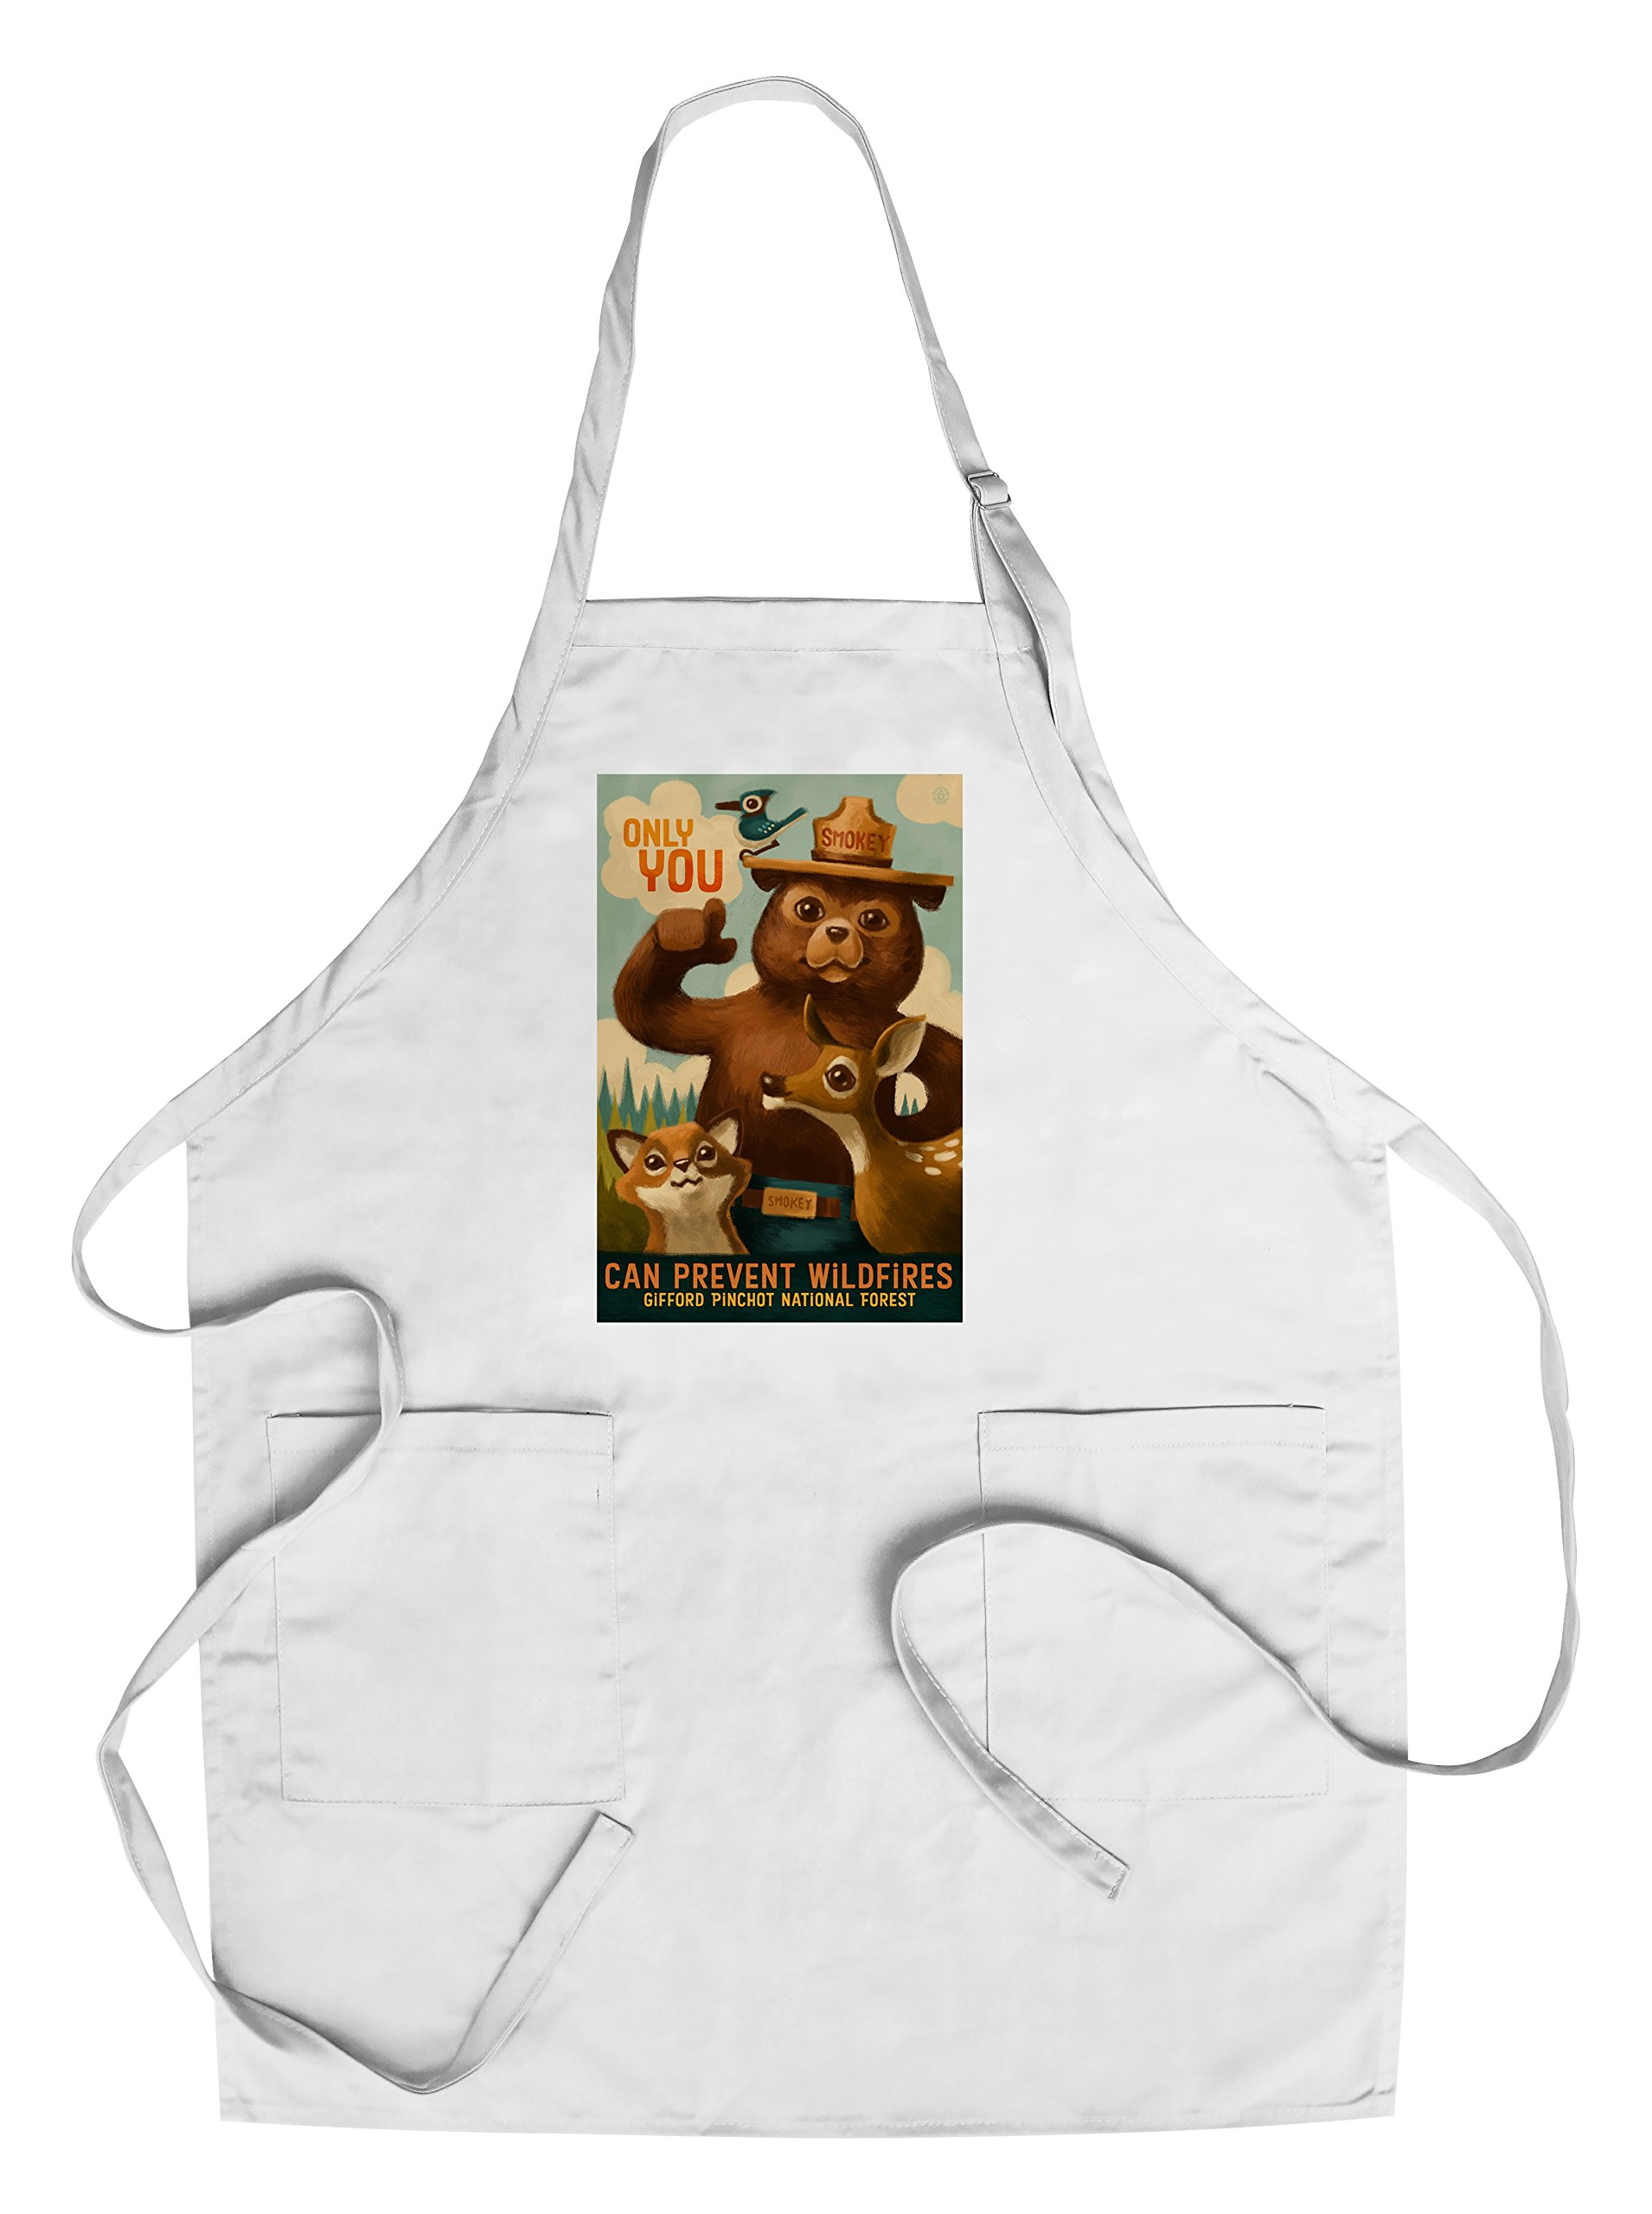 Gifford Pinchot National Forest - Smokey Bear - Only You - Oil Painting (Cotton/Polyester Chef's Apron)